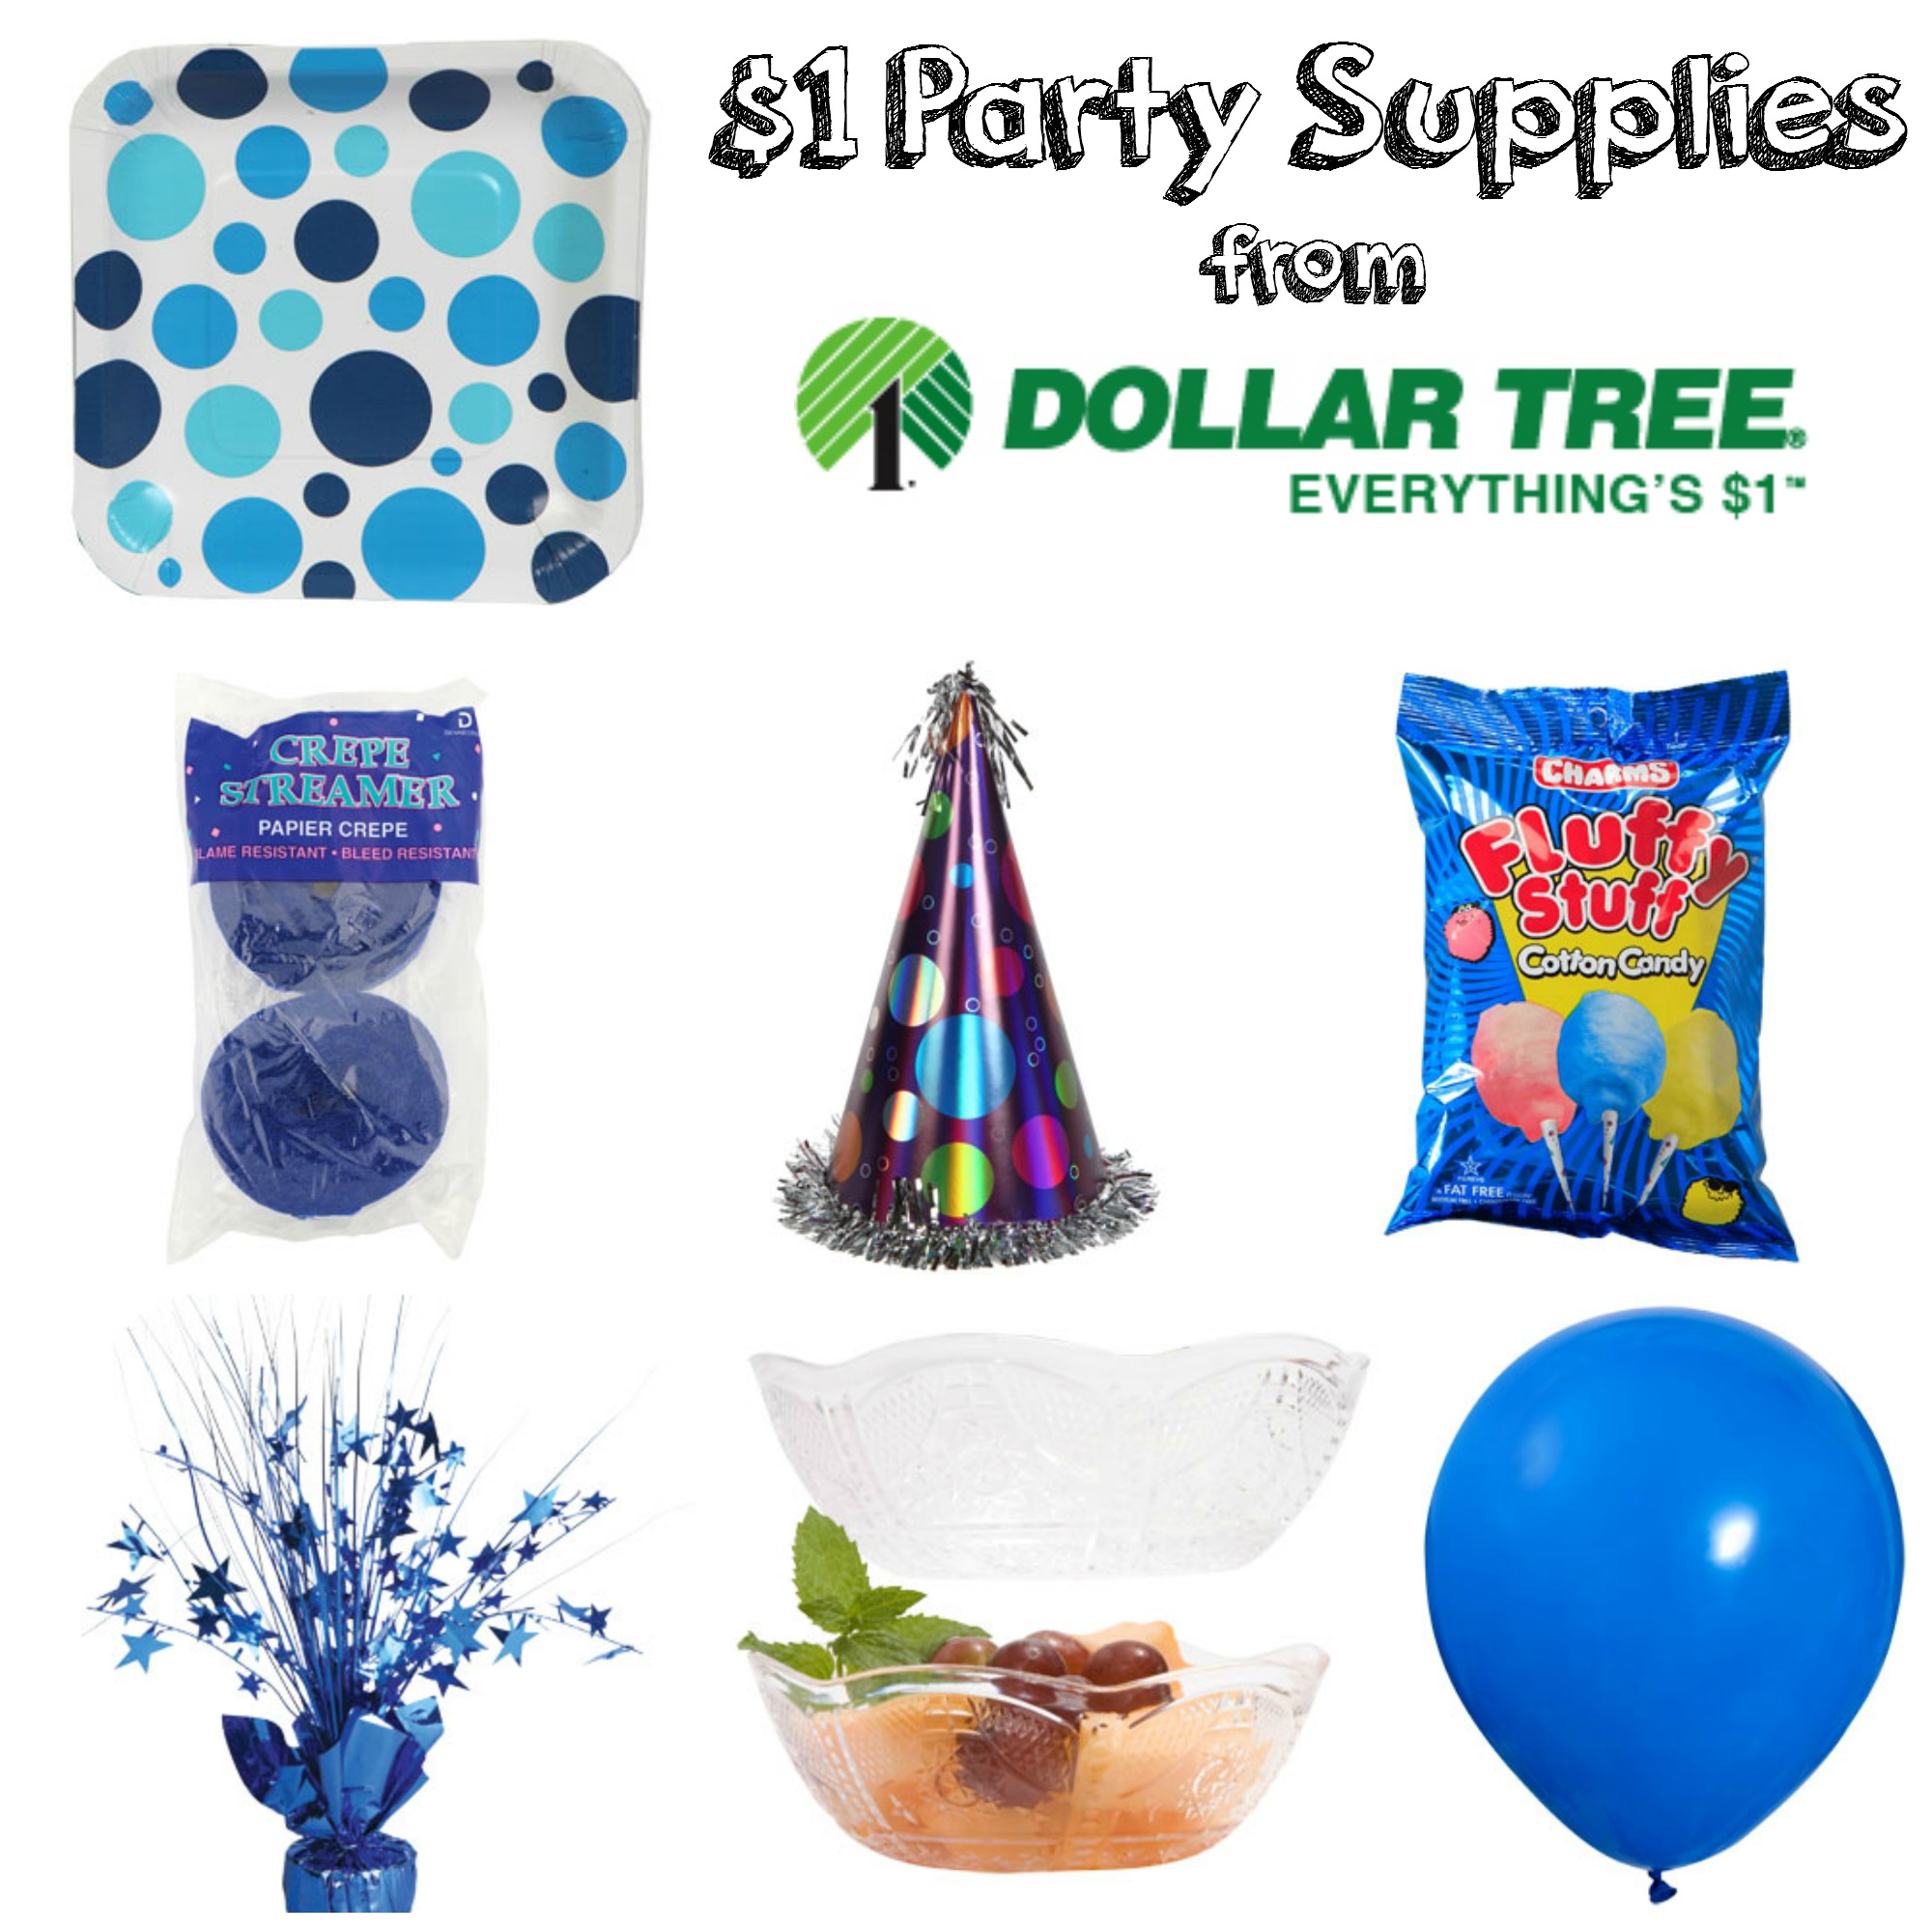 Get Party Supplies For Just $1 From Dollar Tree!